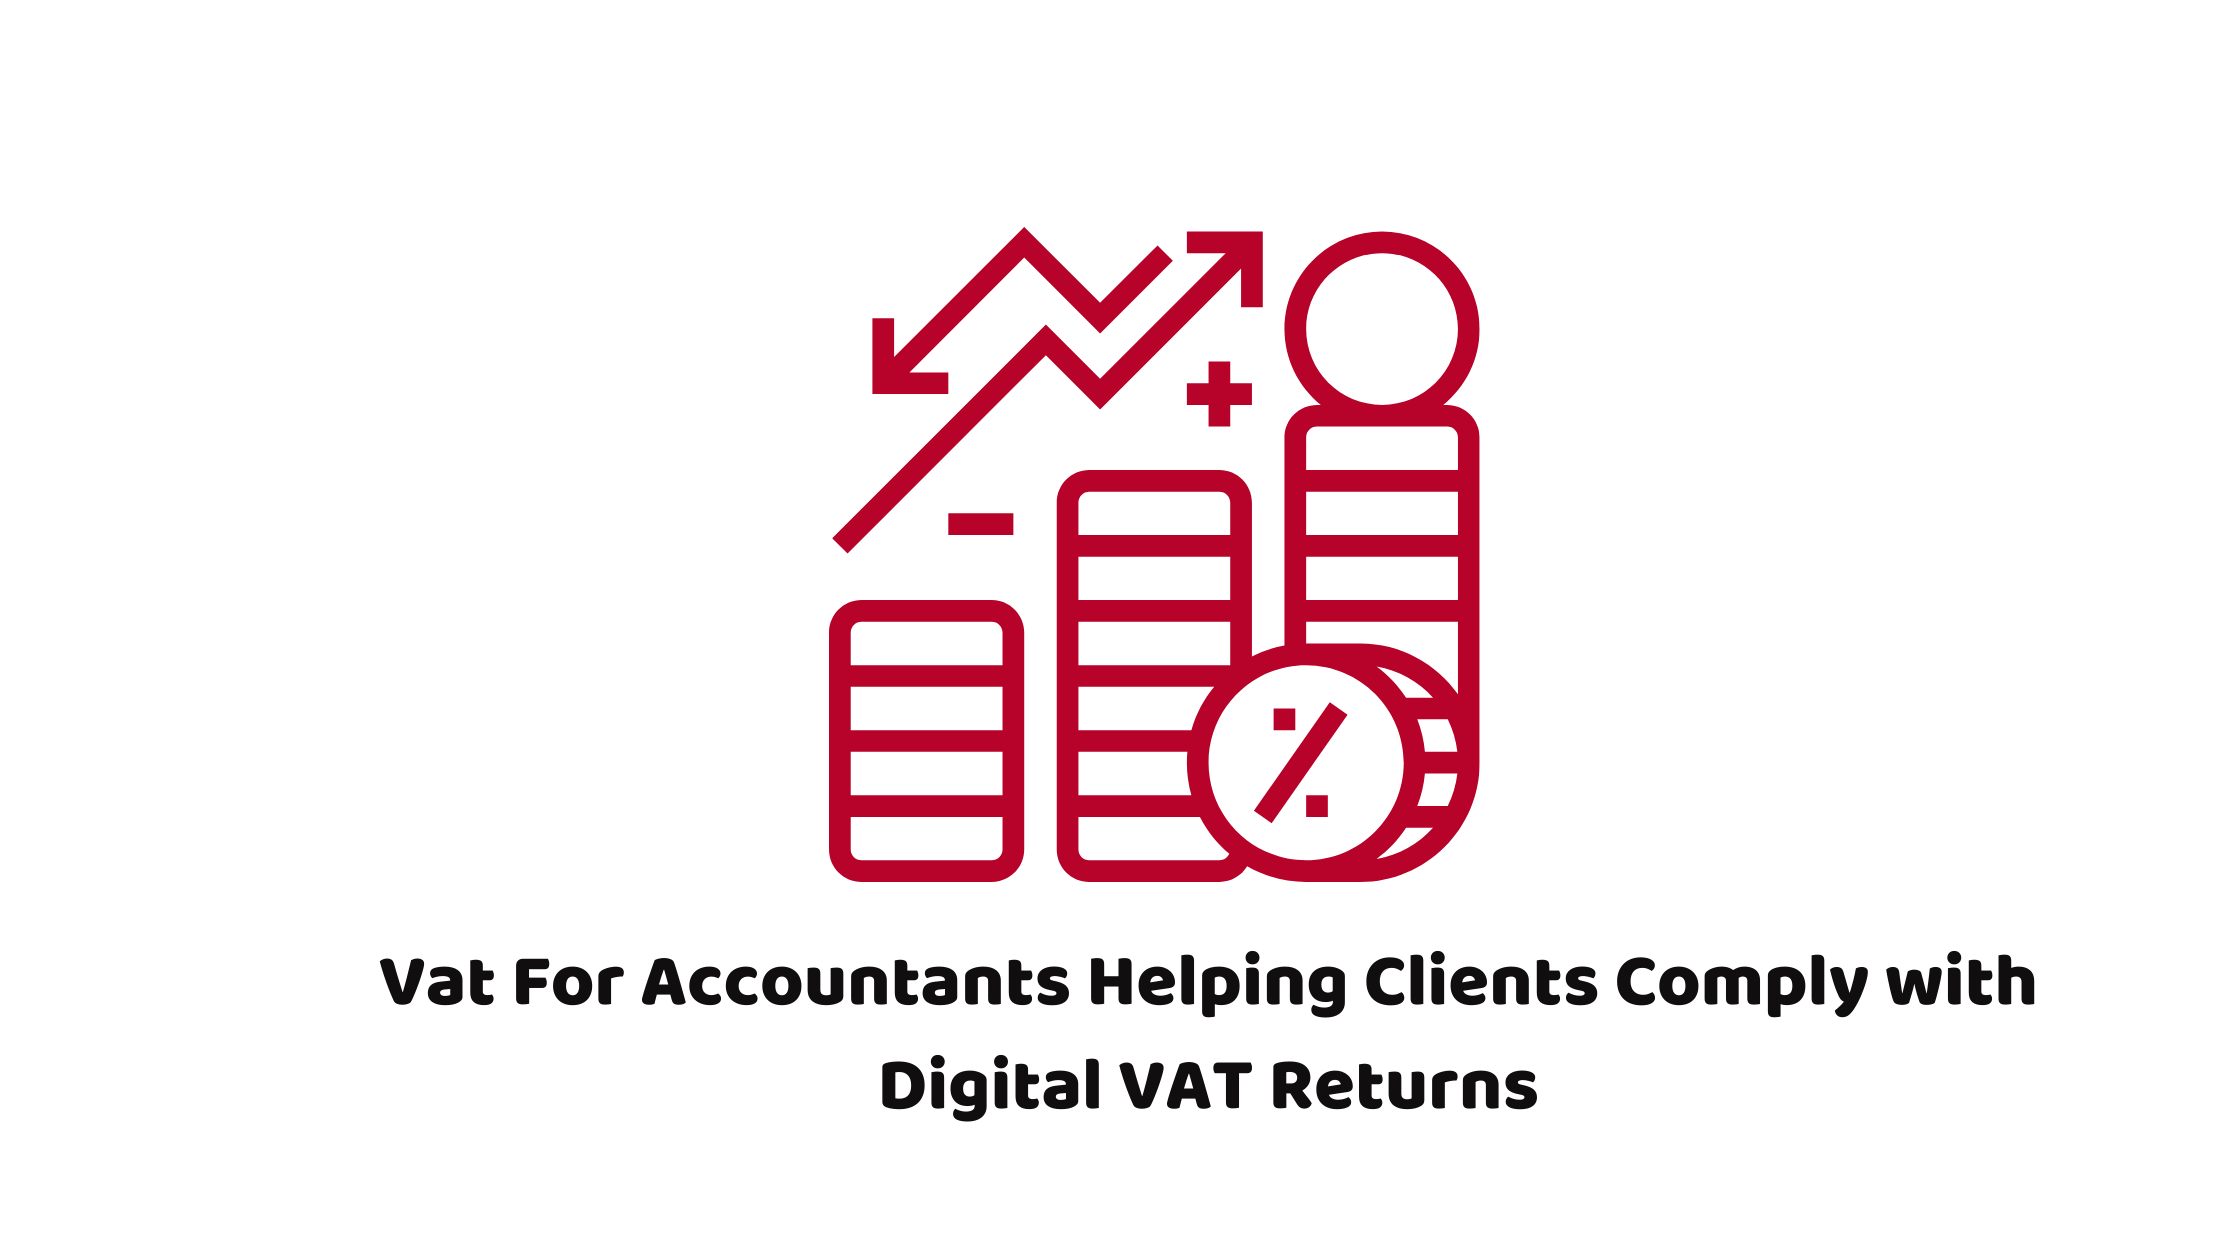 Digital VAT